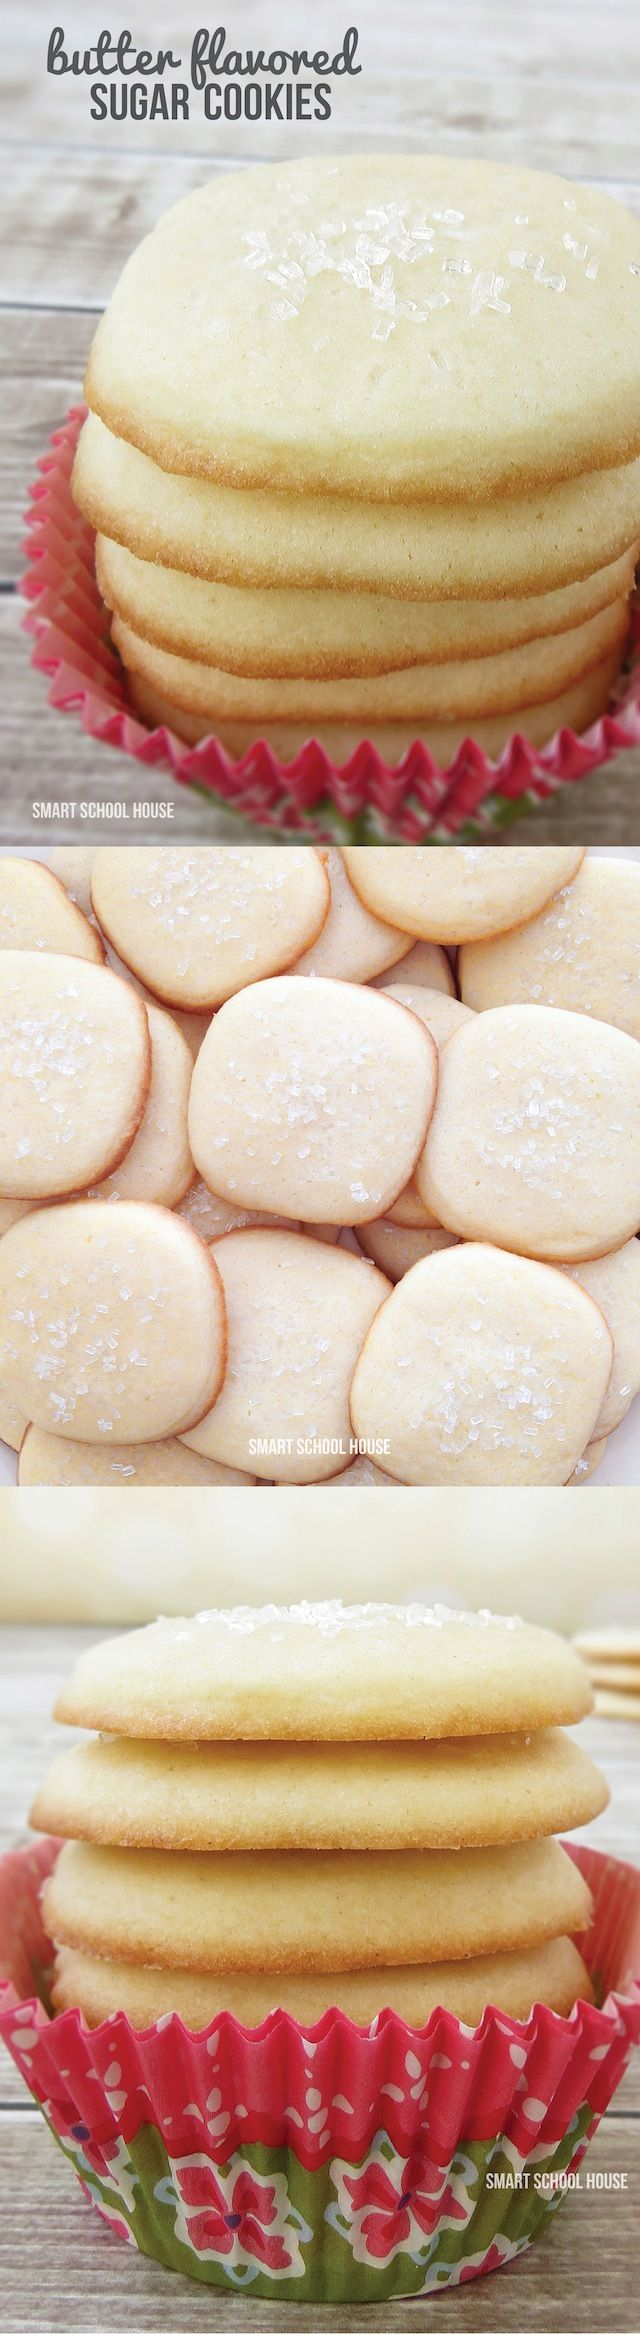 Butter Flavored Sugar Cookies